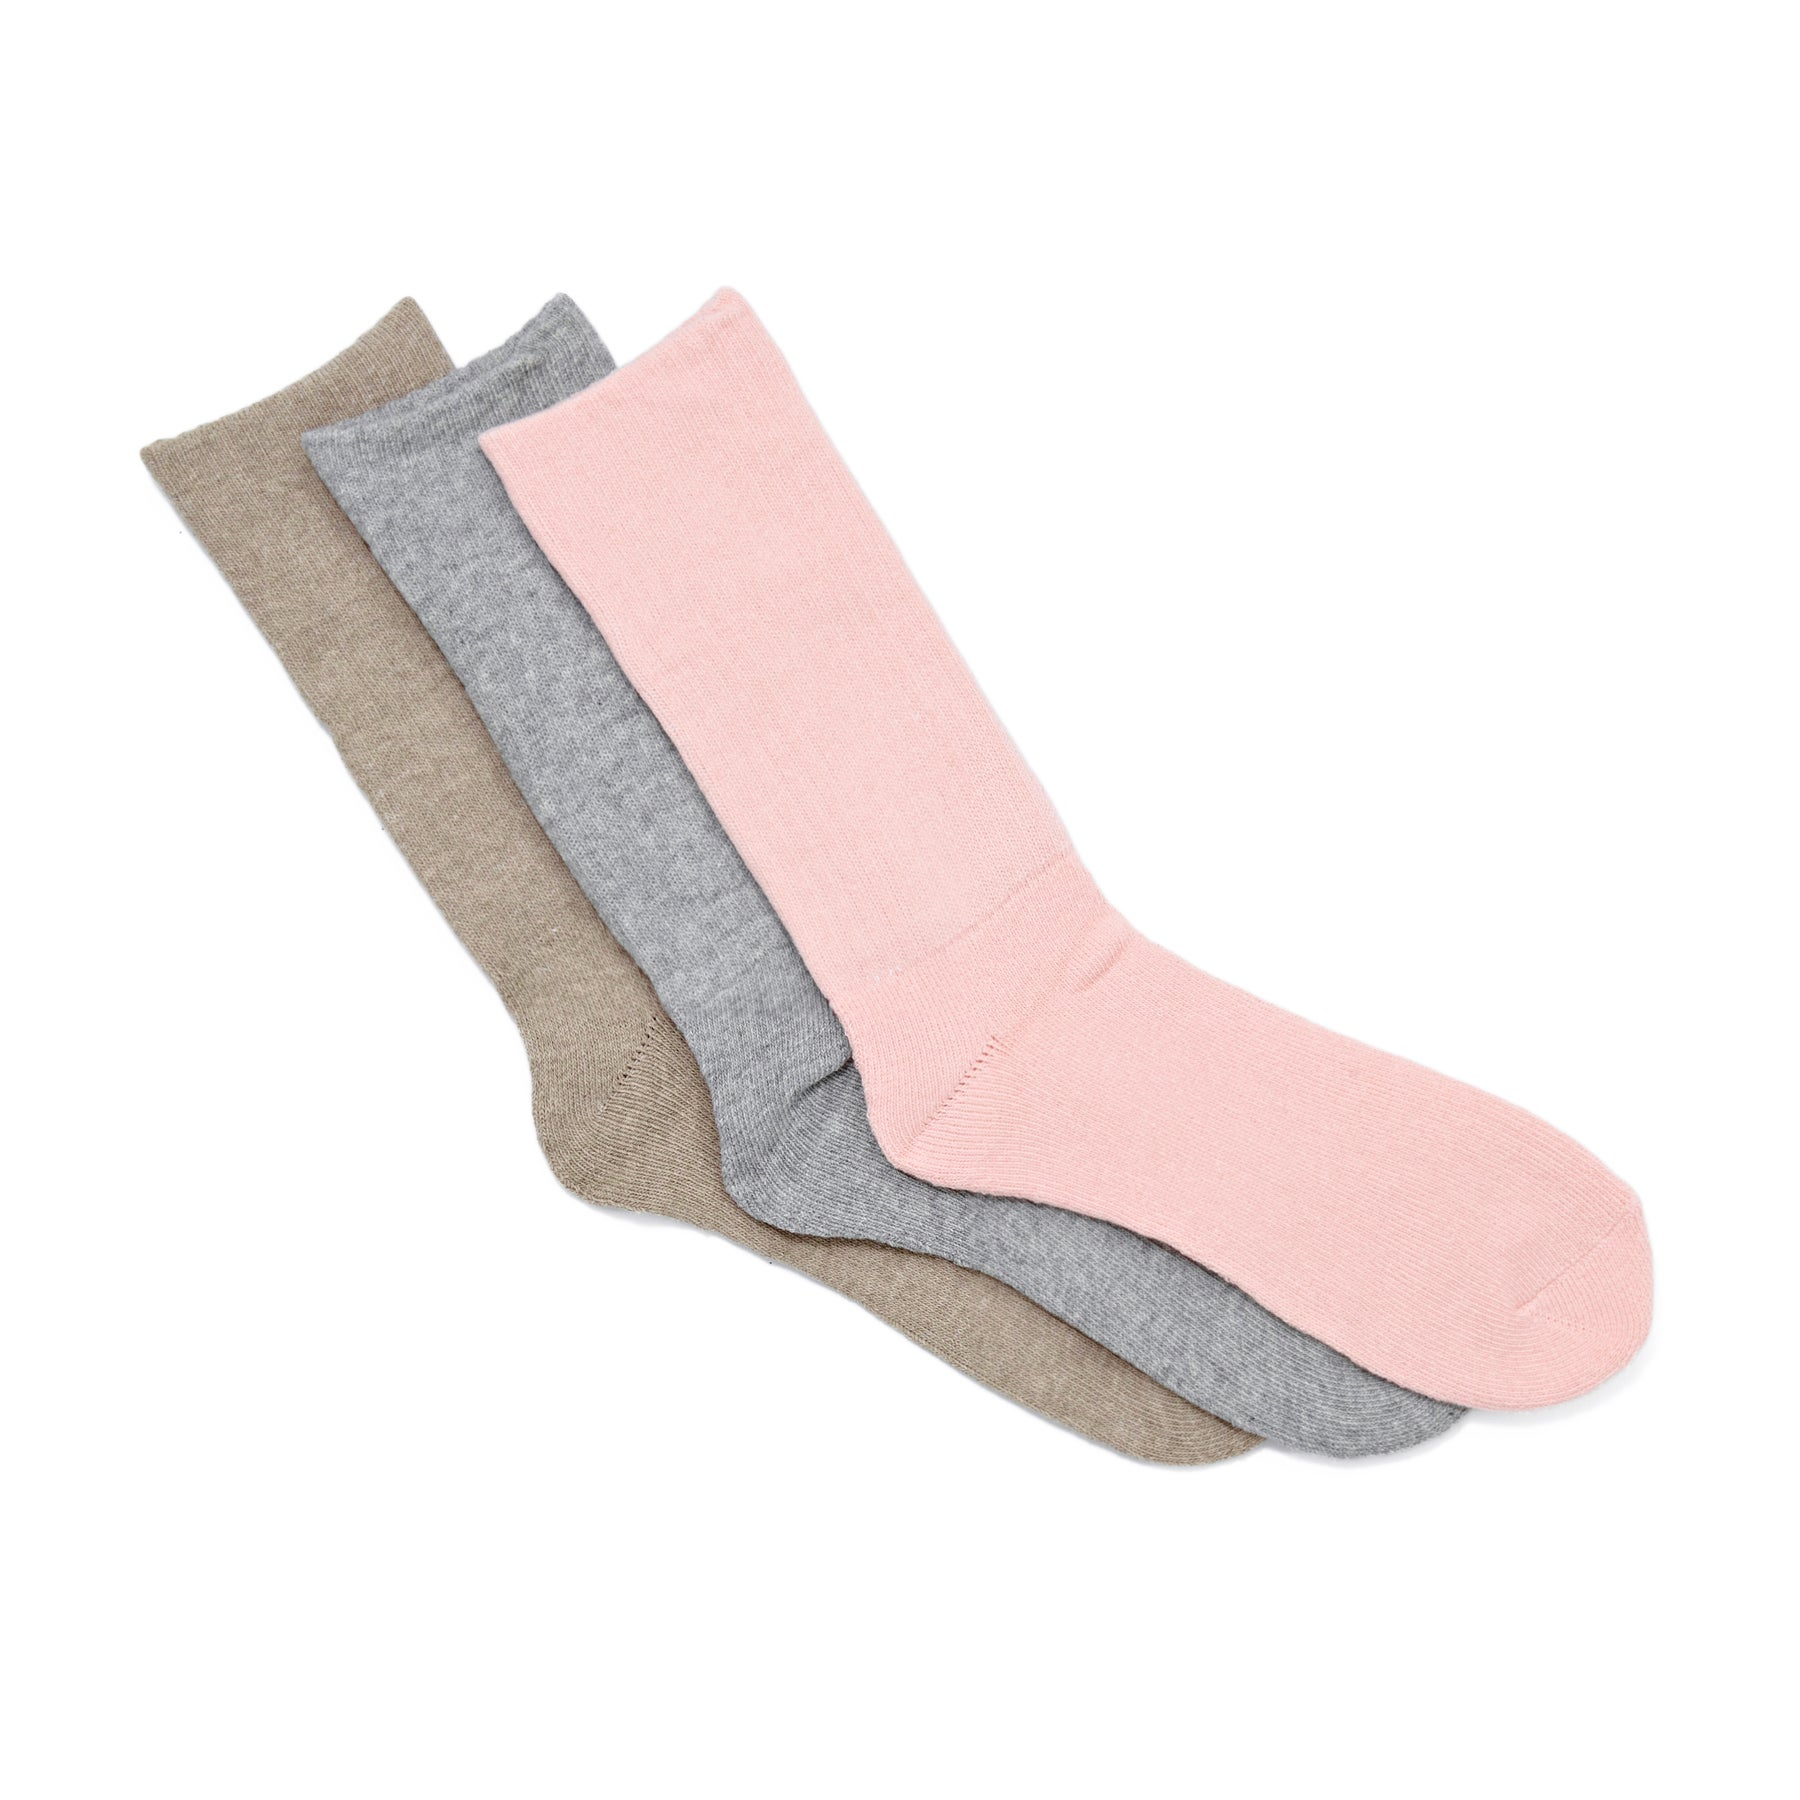 SWELL Marle Rib 3 Pack Womens Socks - Multi